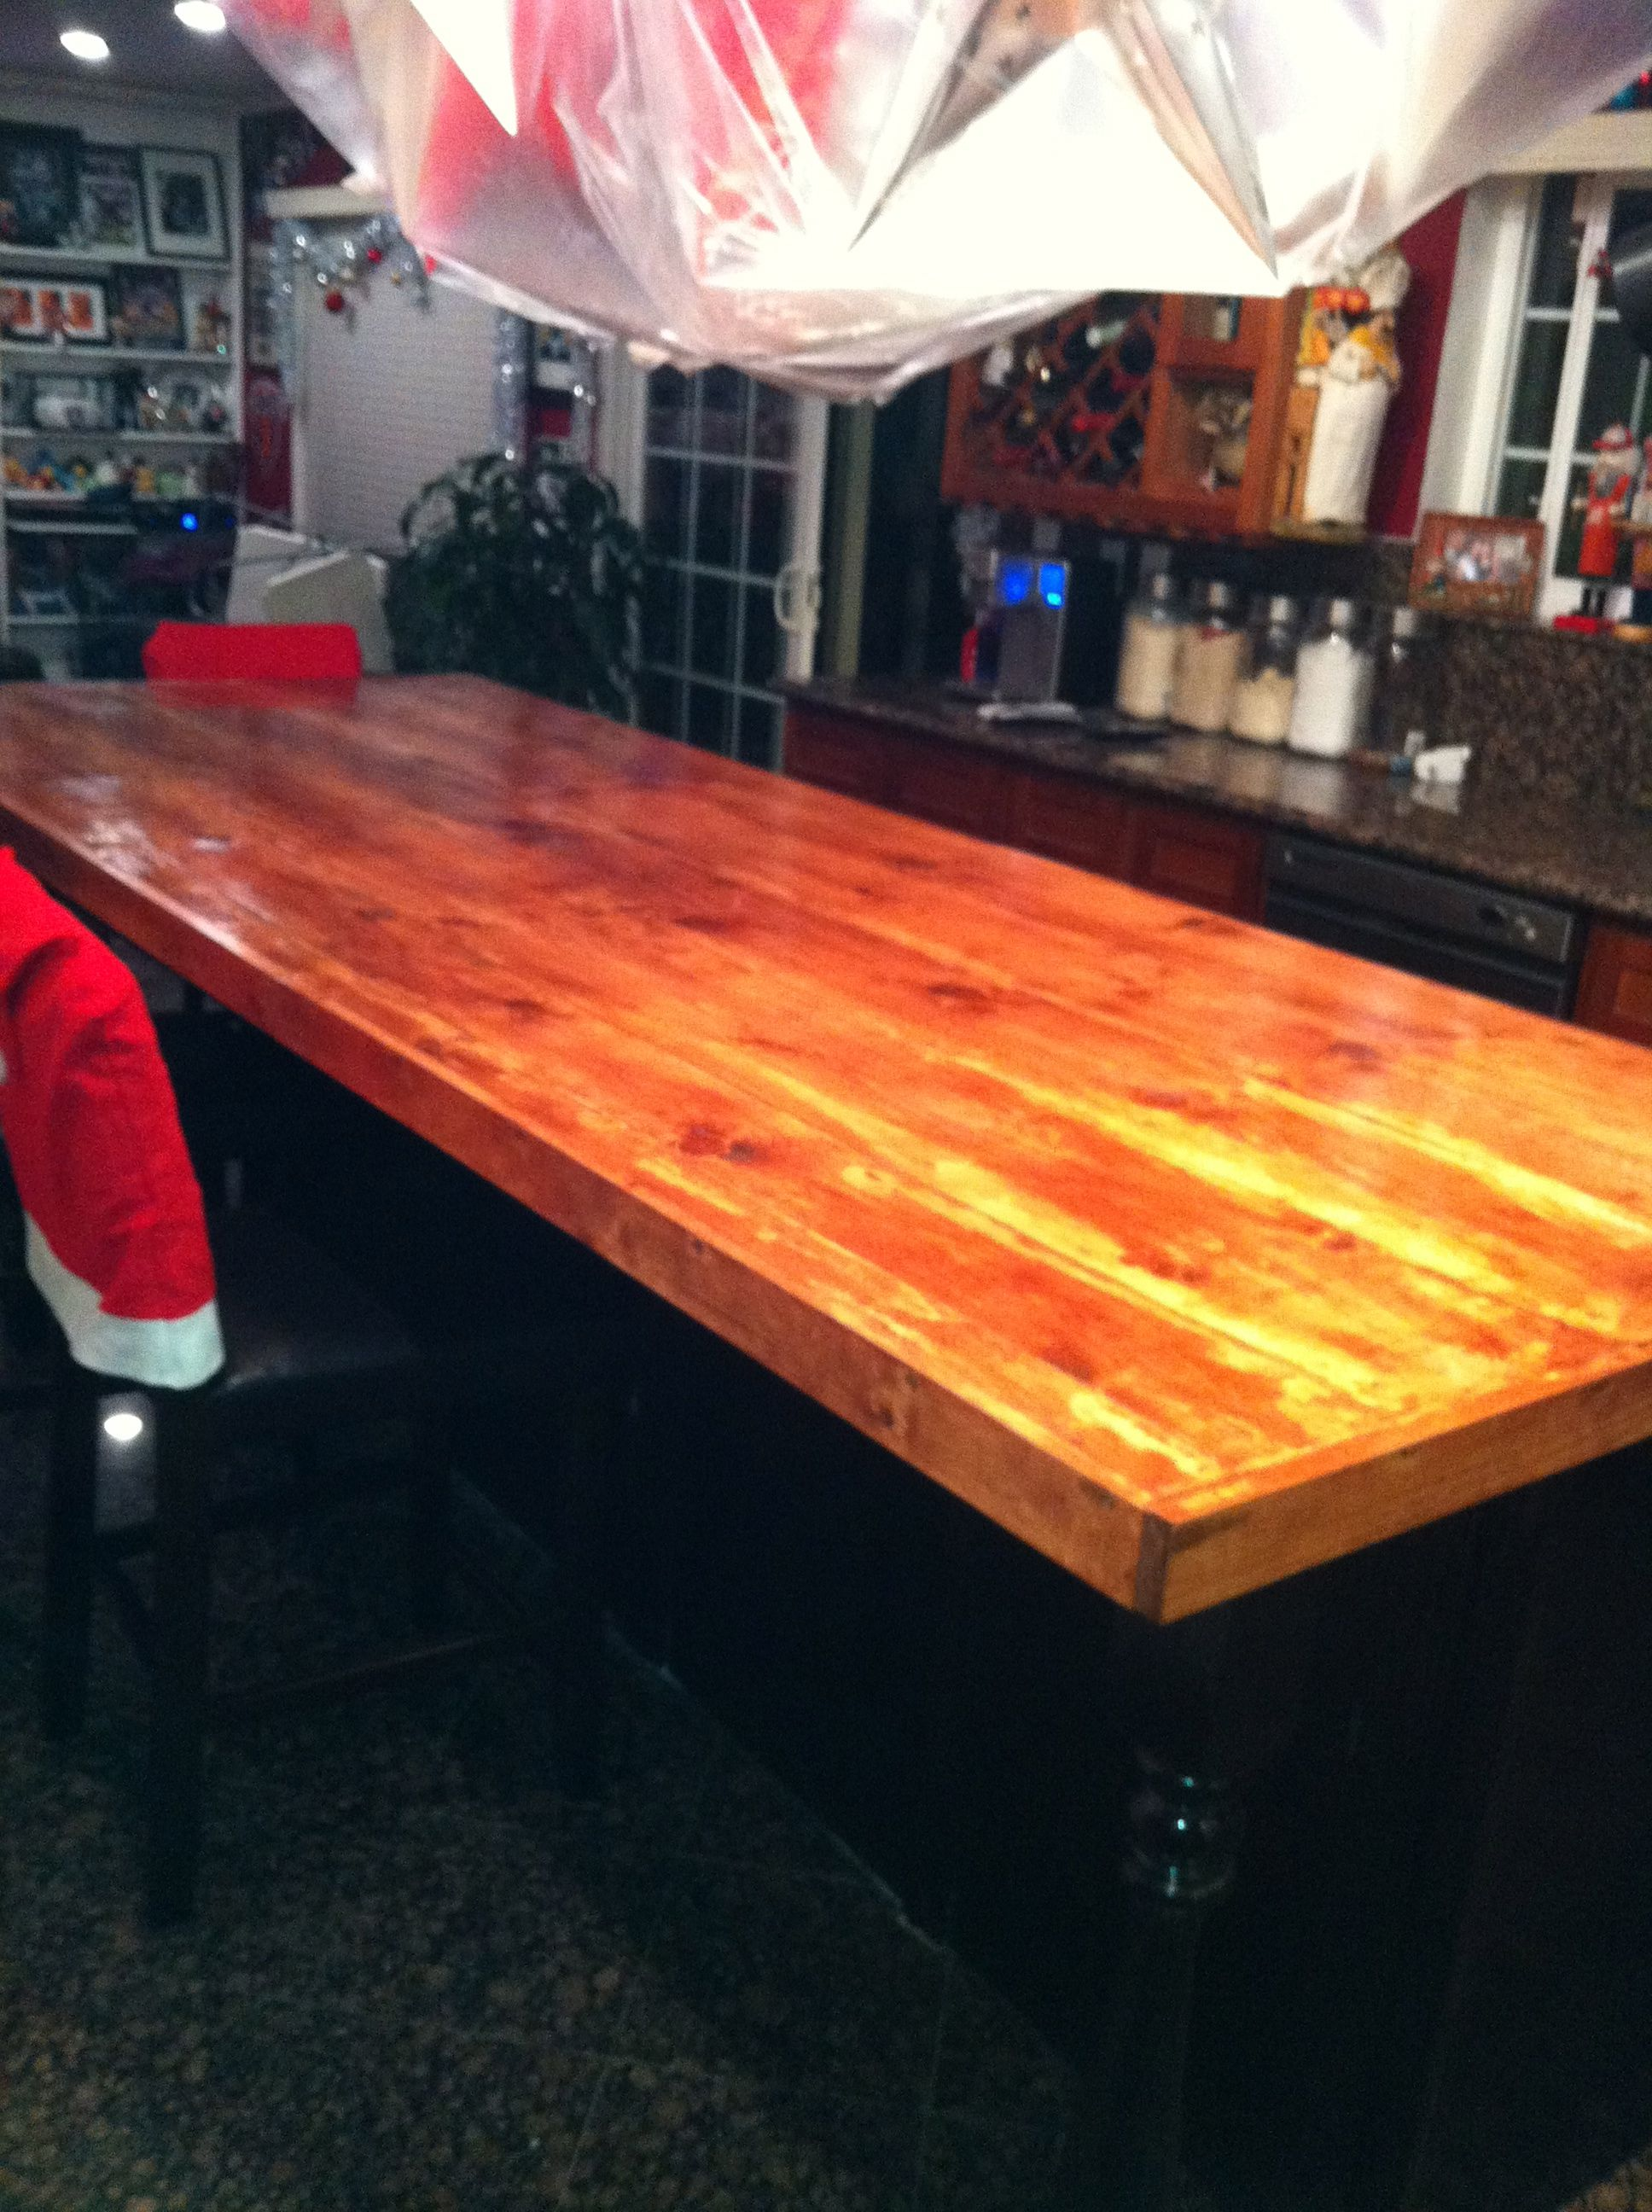 10 Kitchen And Home Decor Items Every 20 Something Needs: DIY Wood Countertop For Kitchen Island. I Used $10 10 Foot